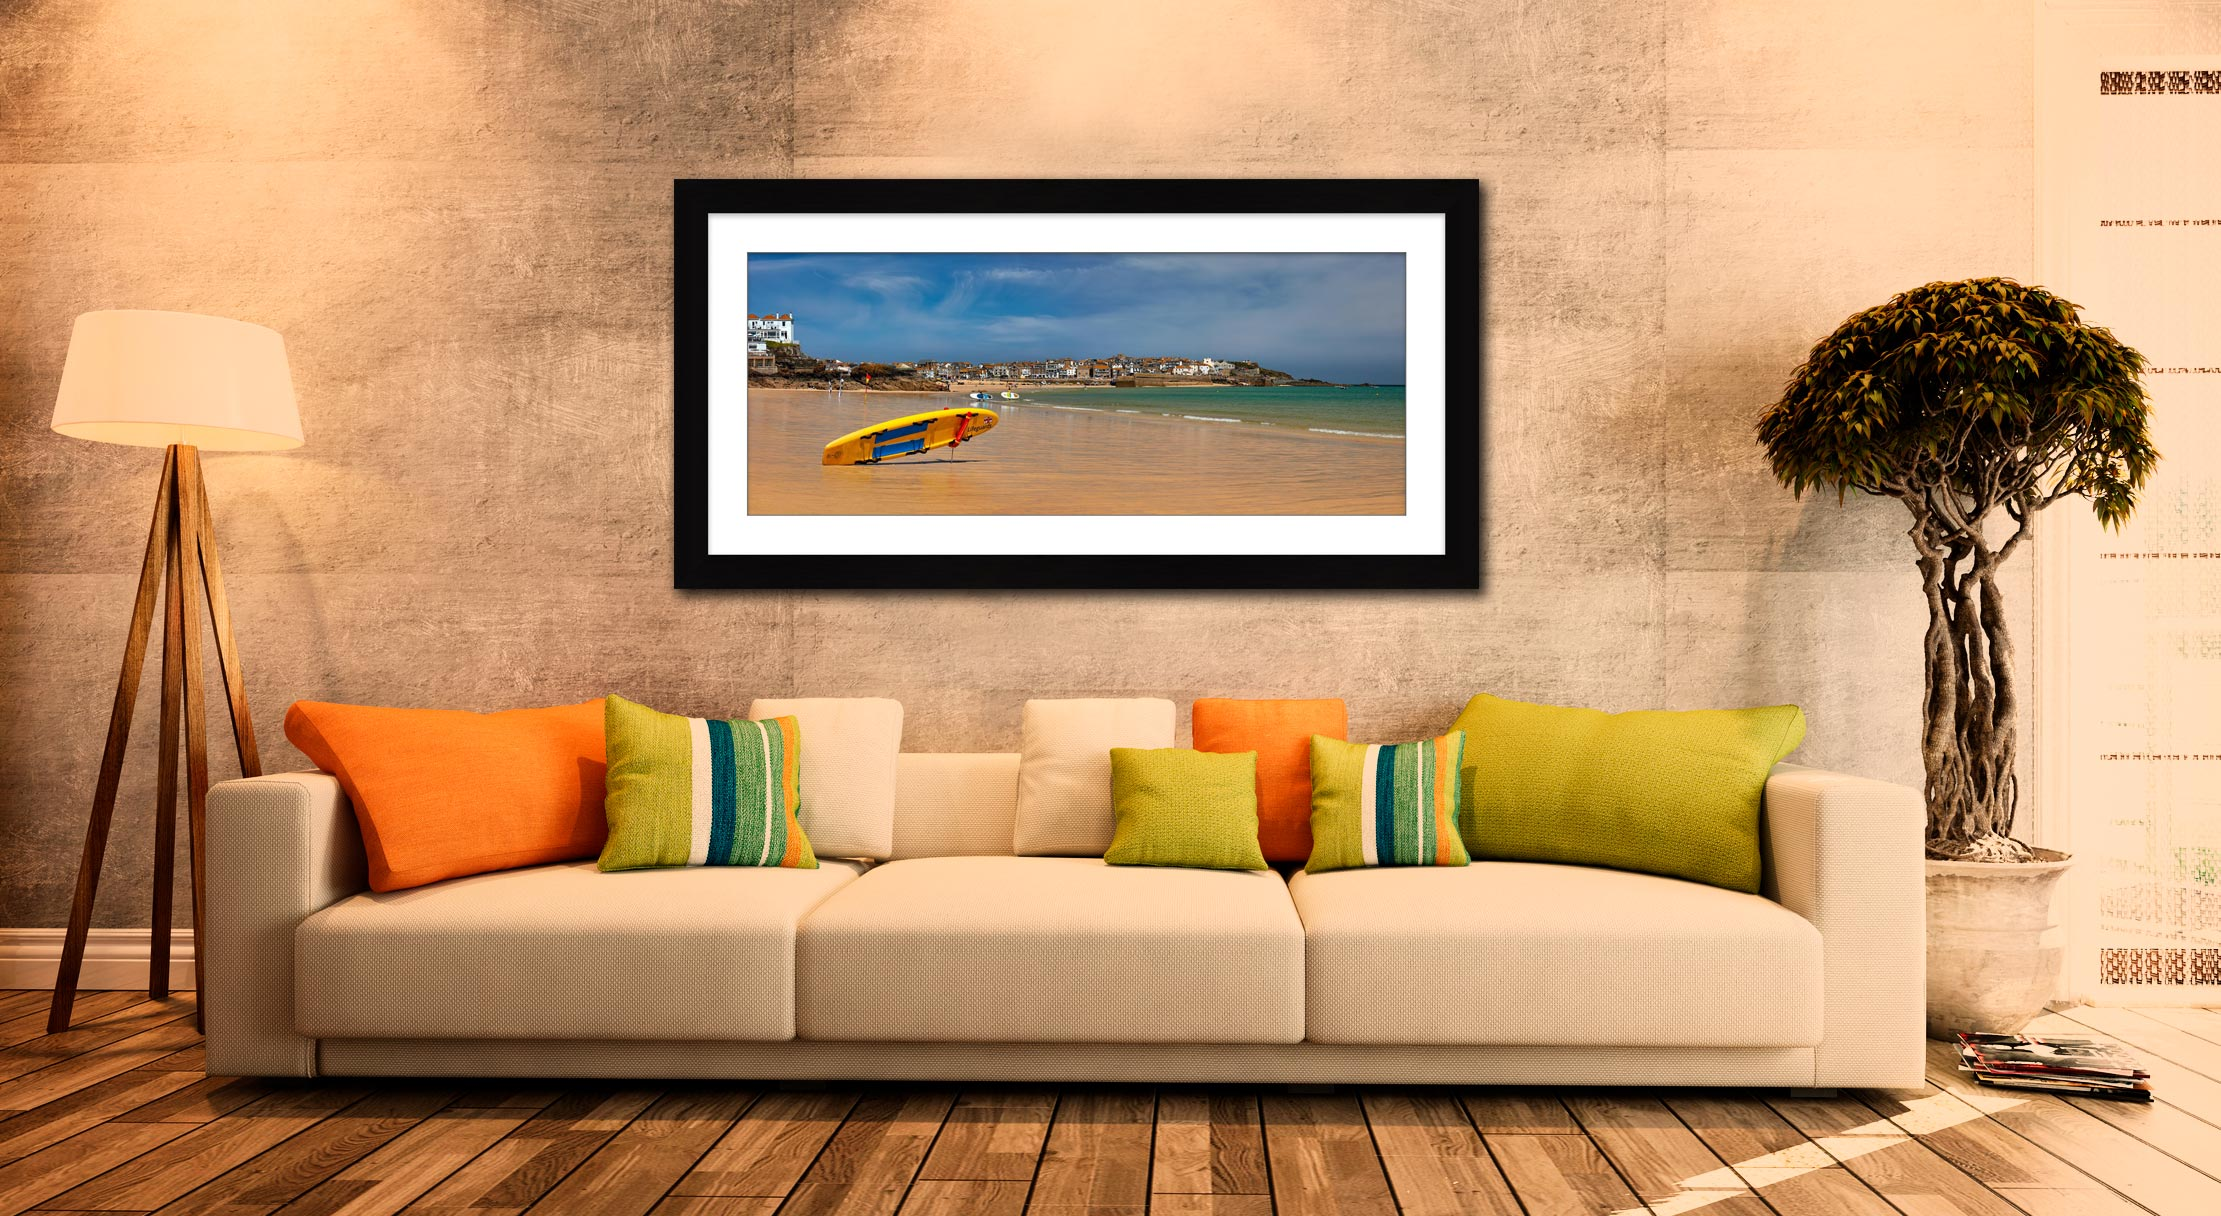 Lifeguard Porthminster Beach - Framed Print with Mount on Wall